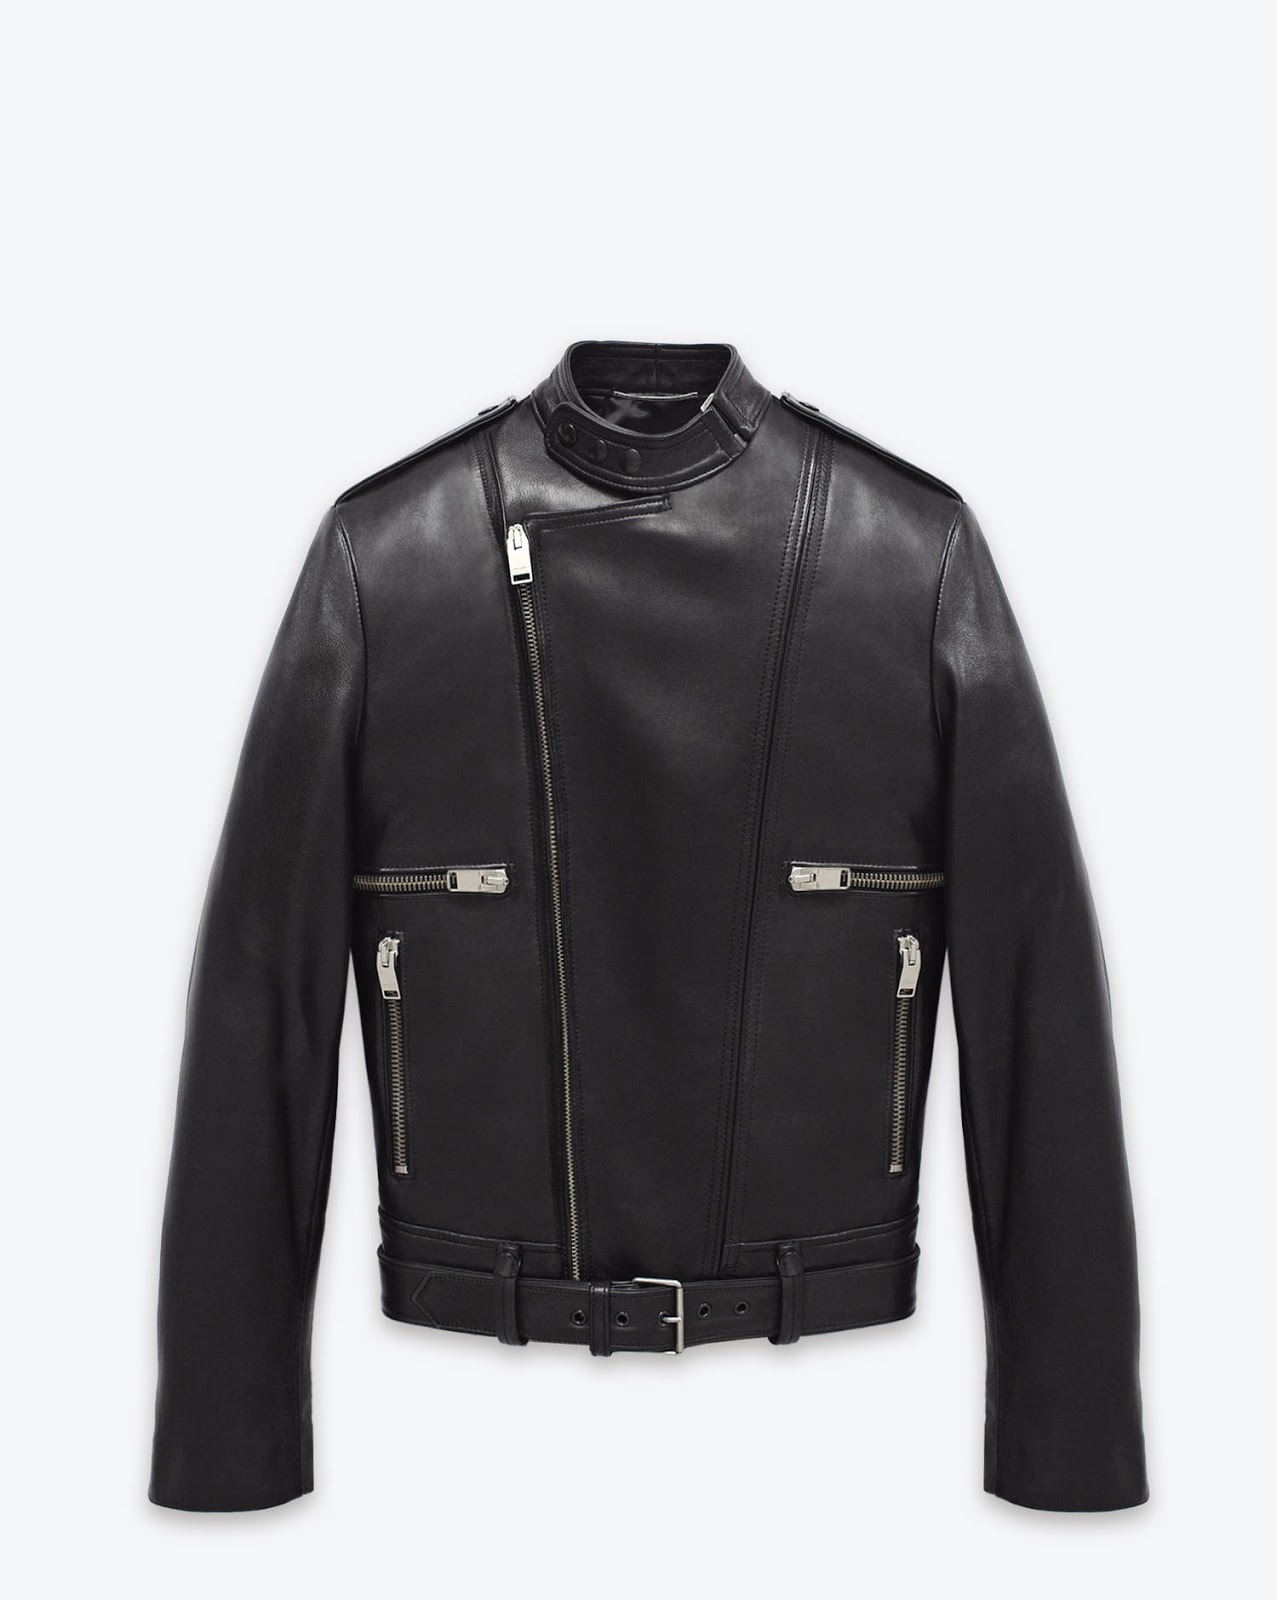 Ysl leather jacket